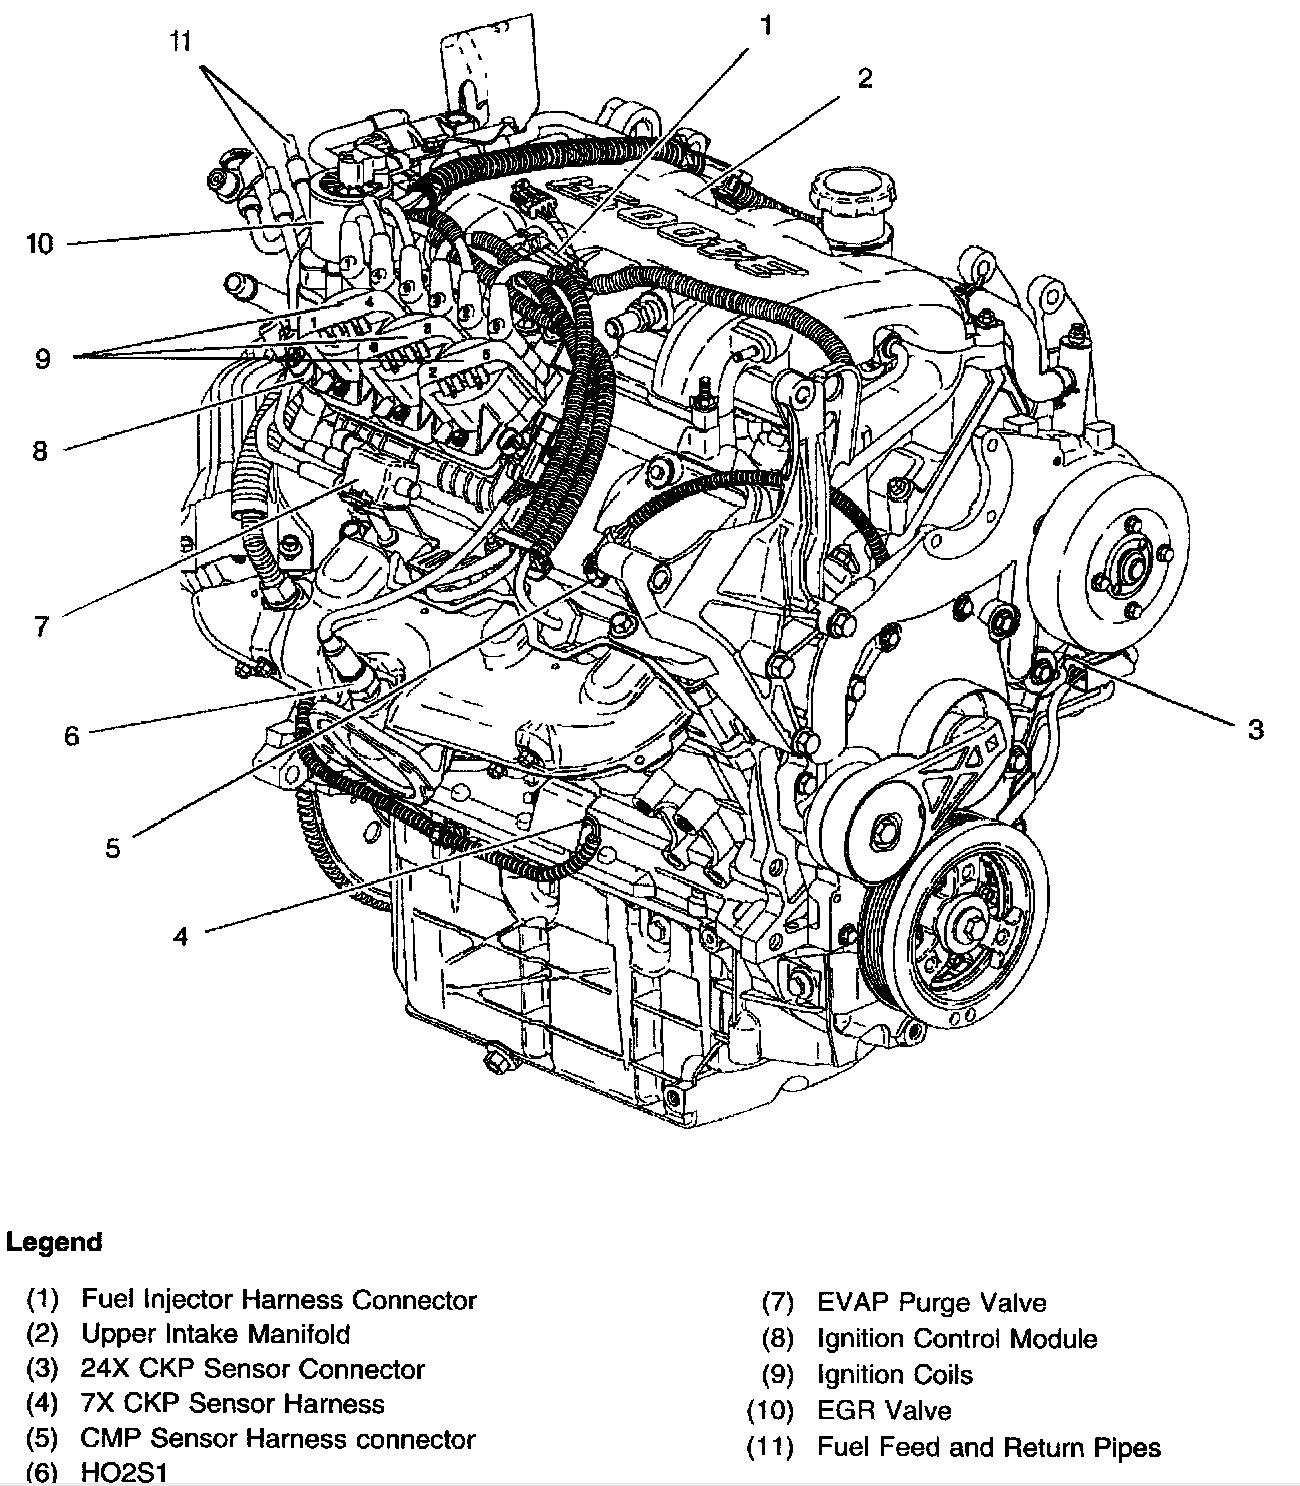 4 2 vortec engine diagram - wiring diagram data 4 3l vortec engine intake diagram  tennisabtlg-tus-erfenbach.de